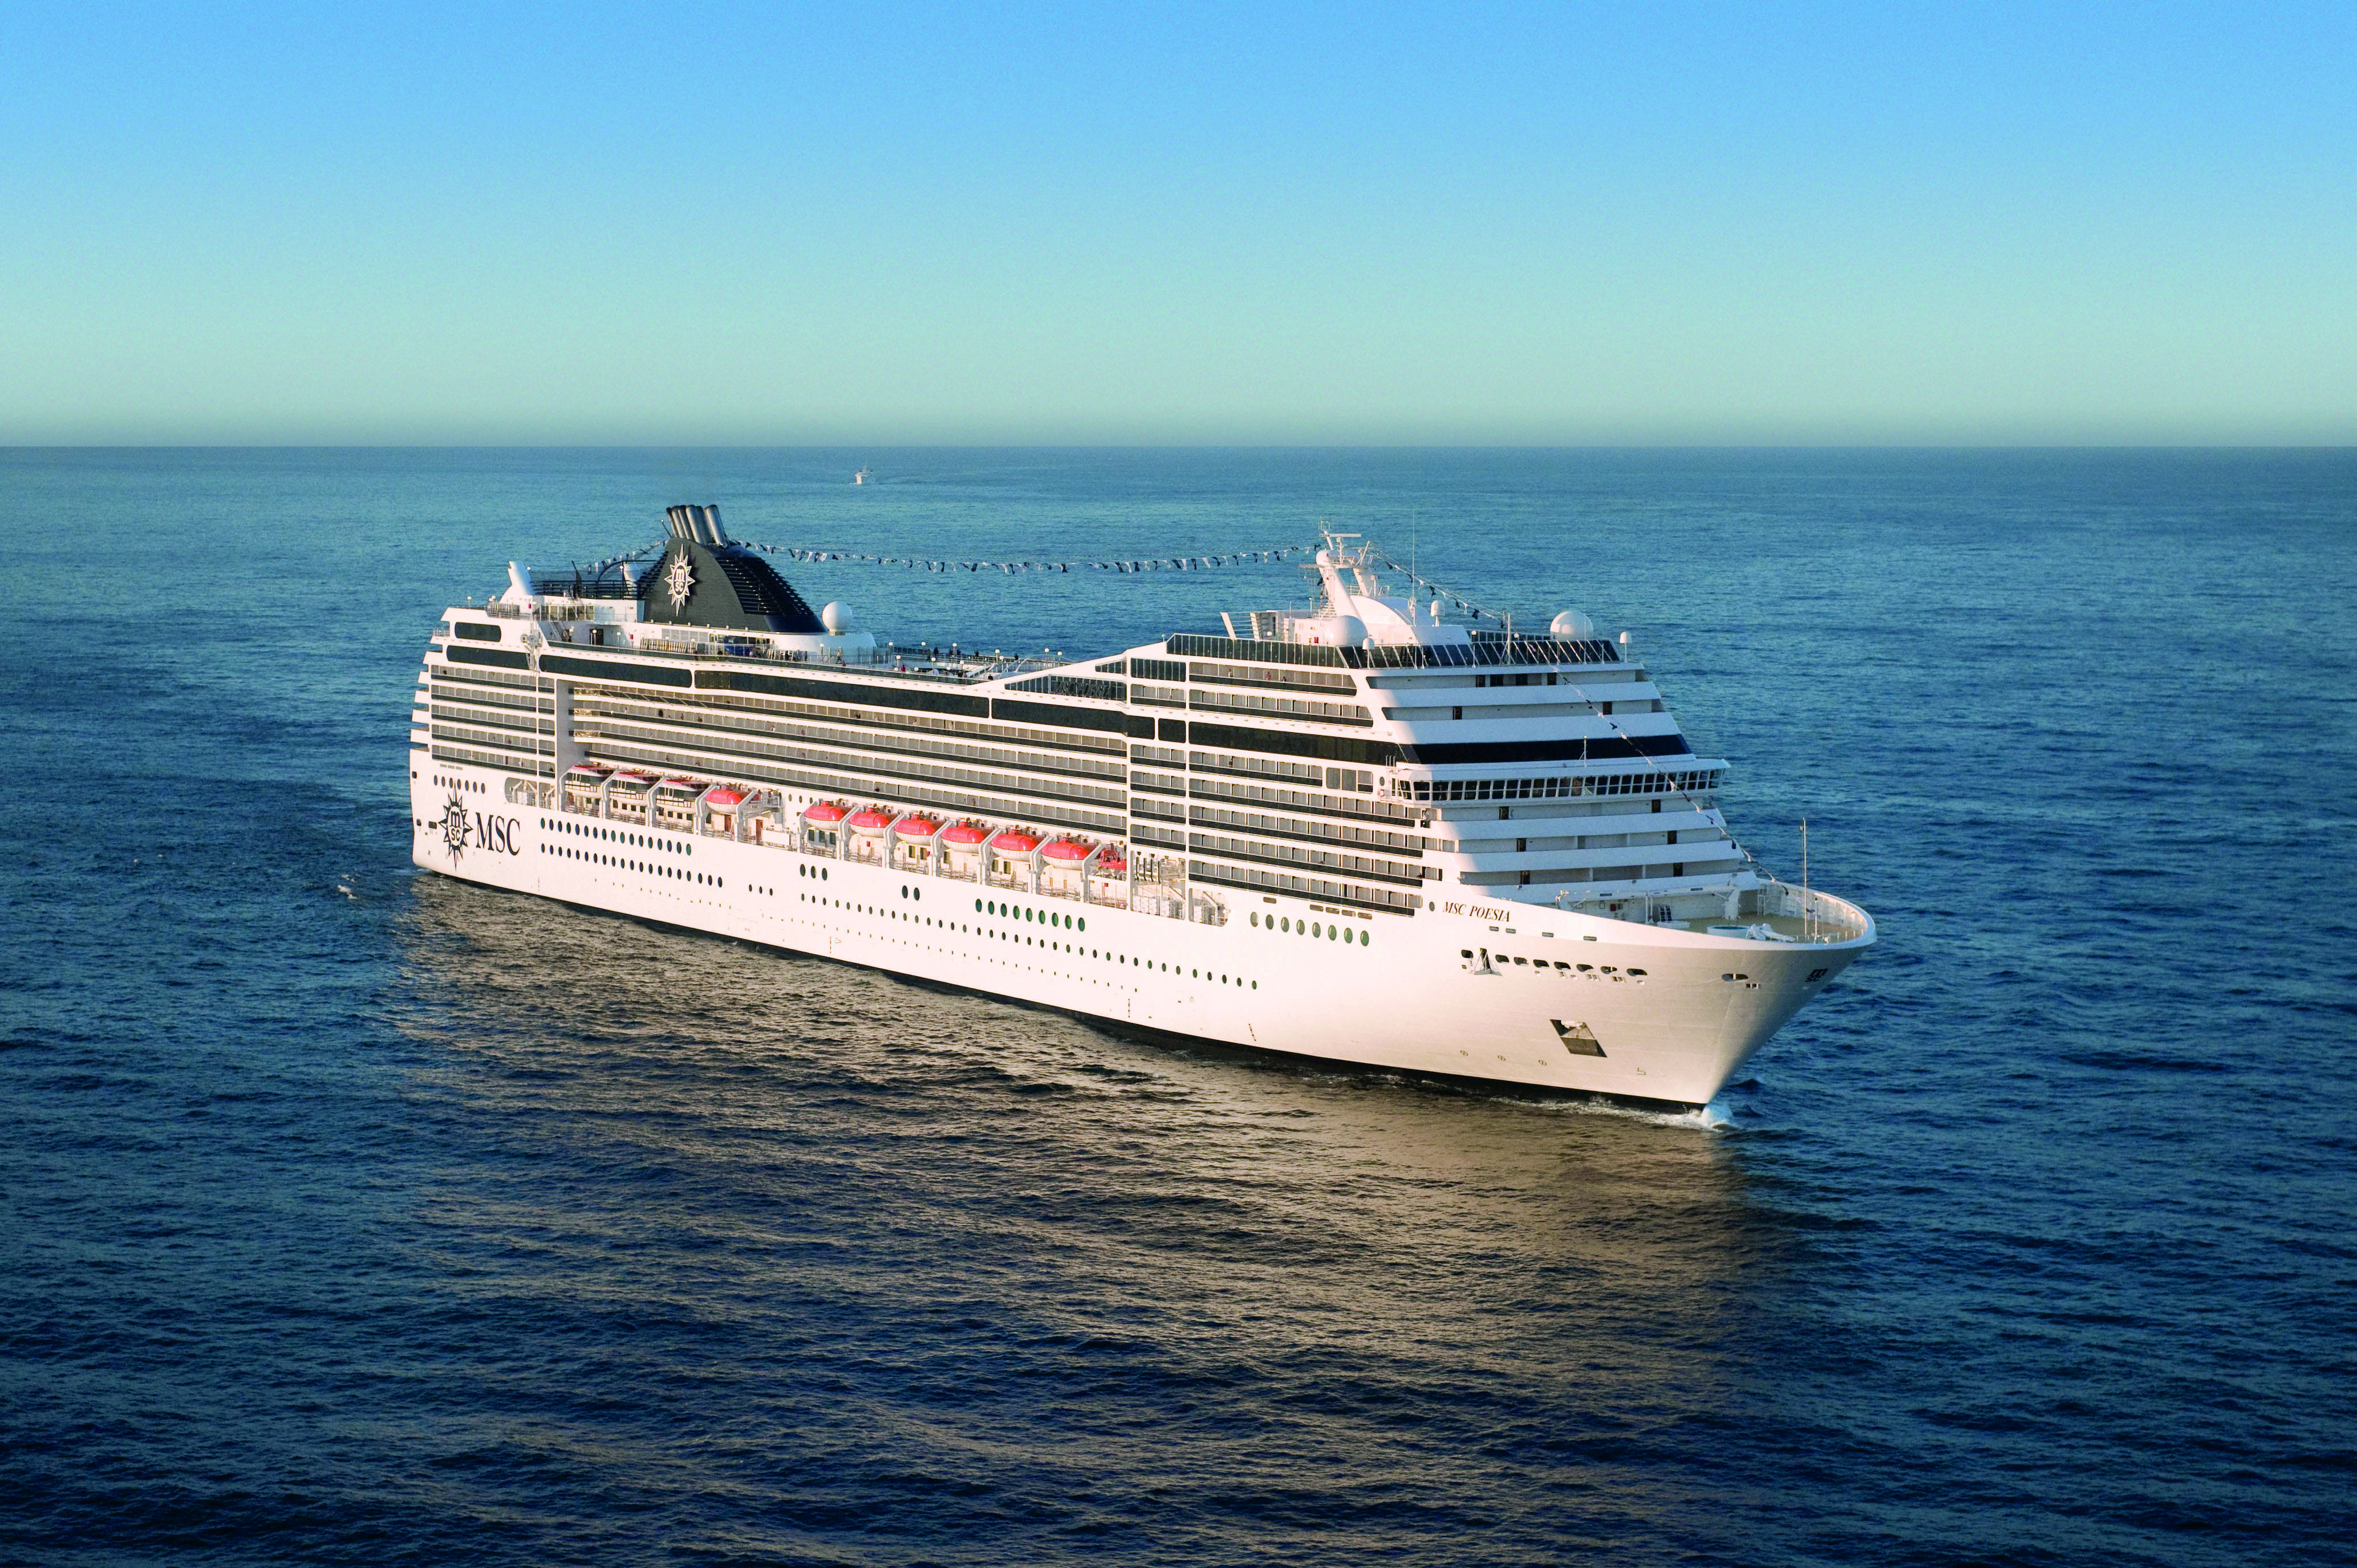 MSC Cruises MSC Poesia Cruise Ship Reviews UPDATED - Guest entertainers wanted for cruise ships